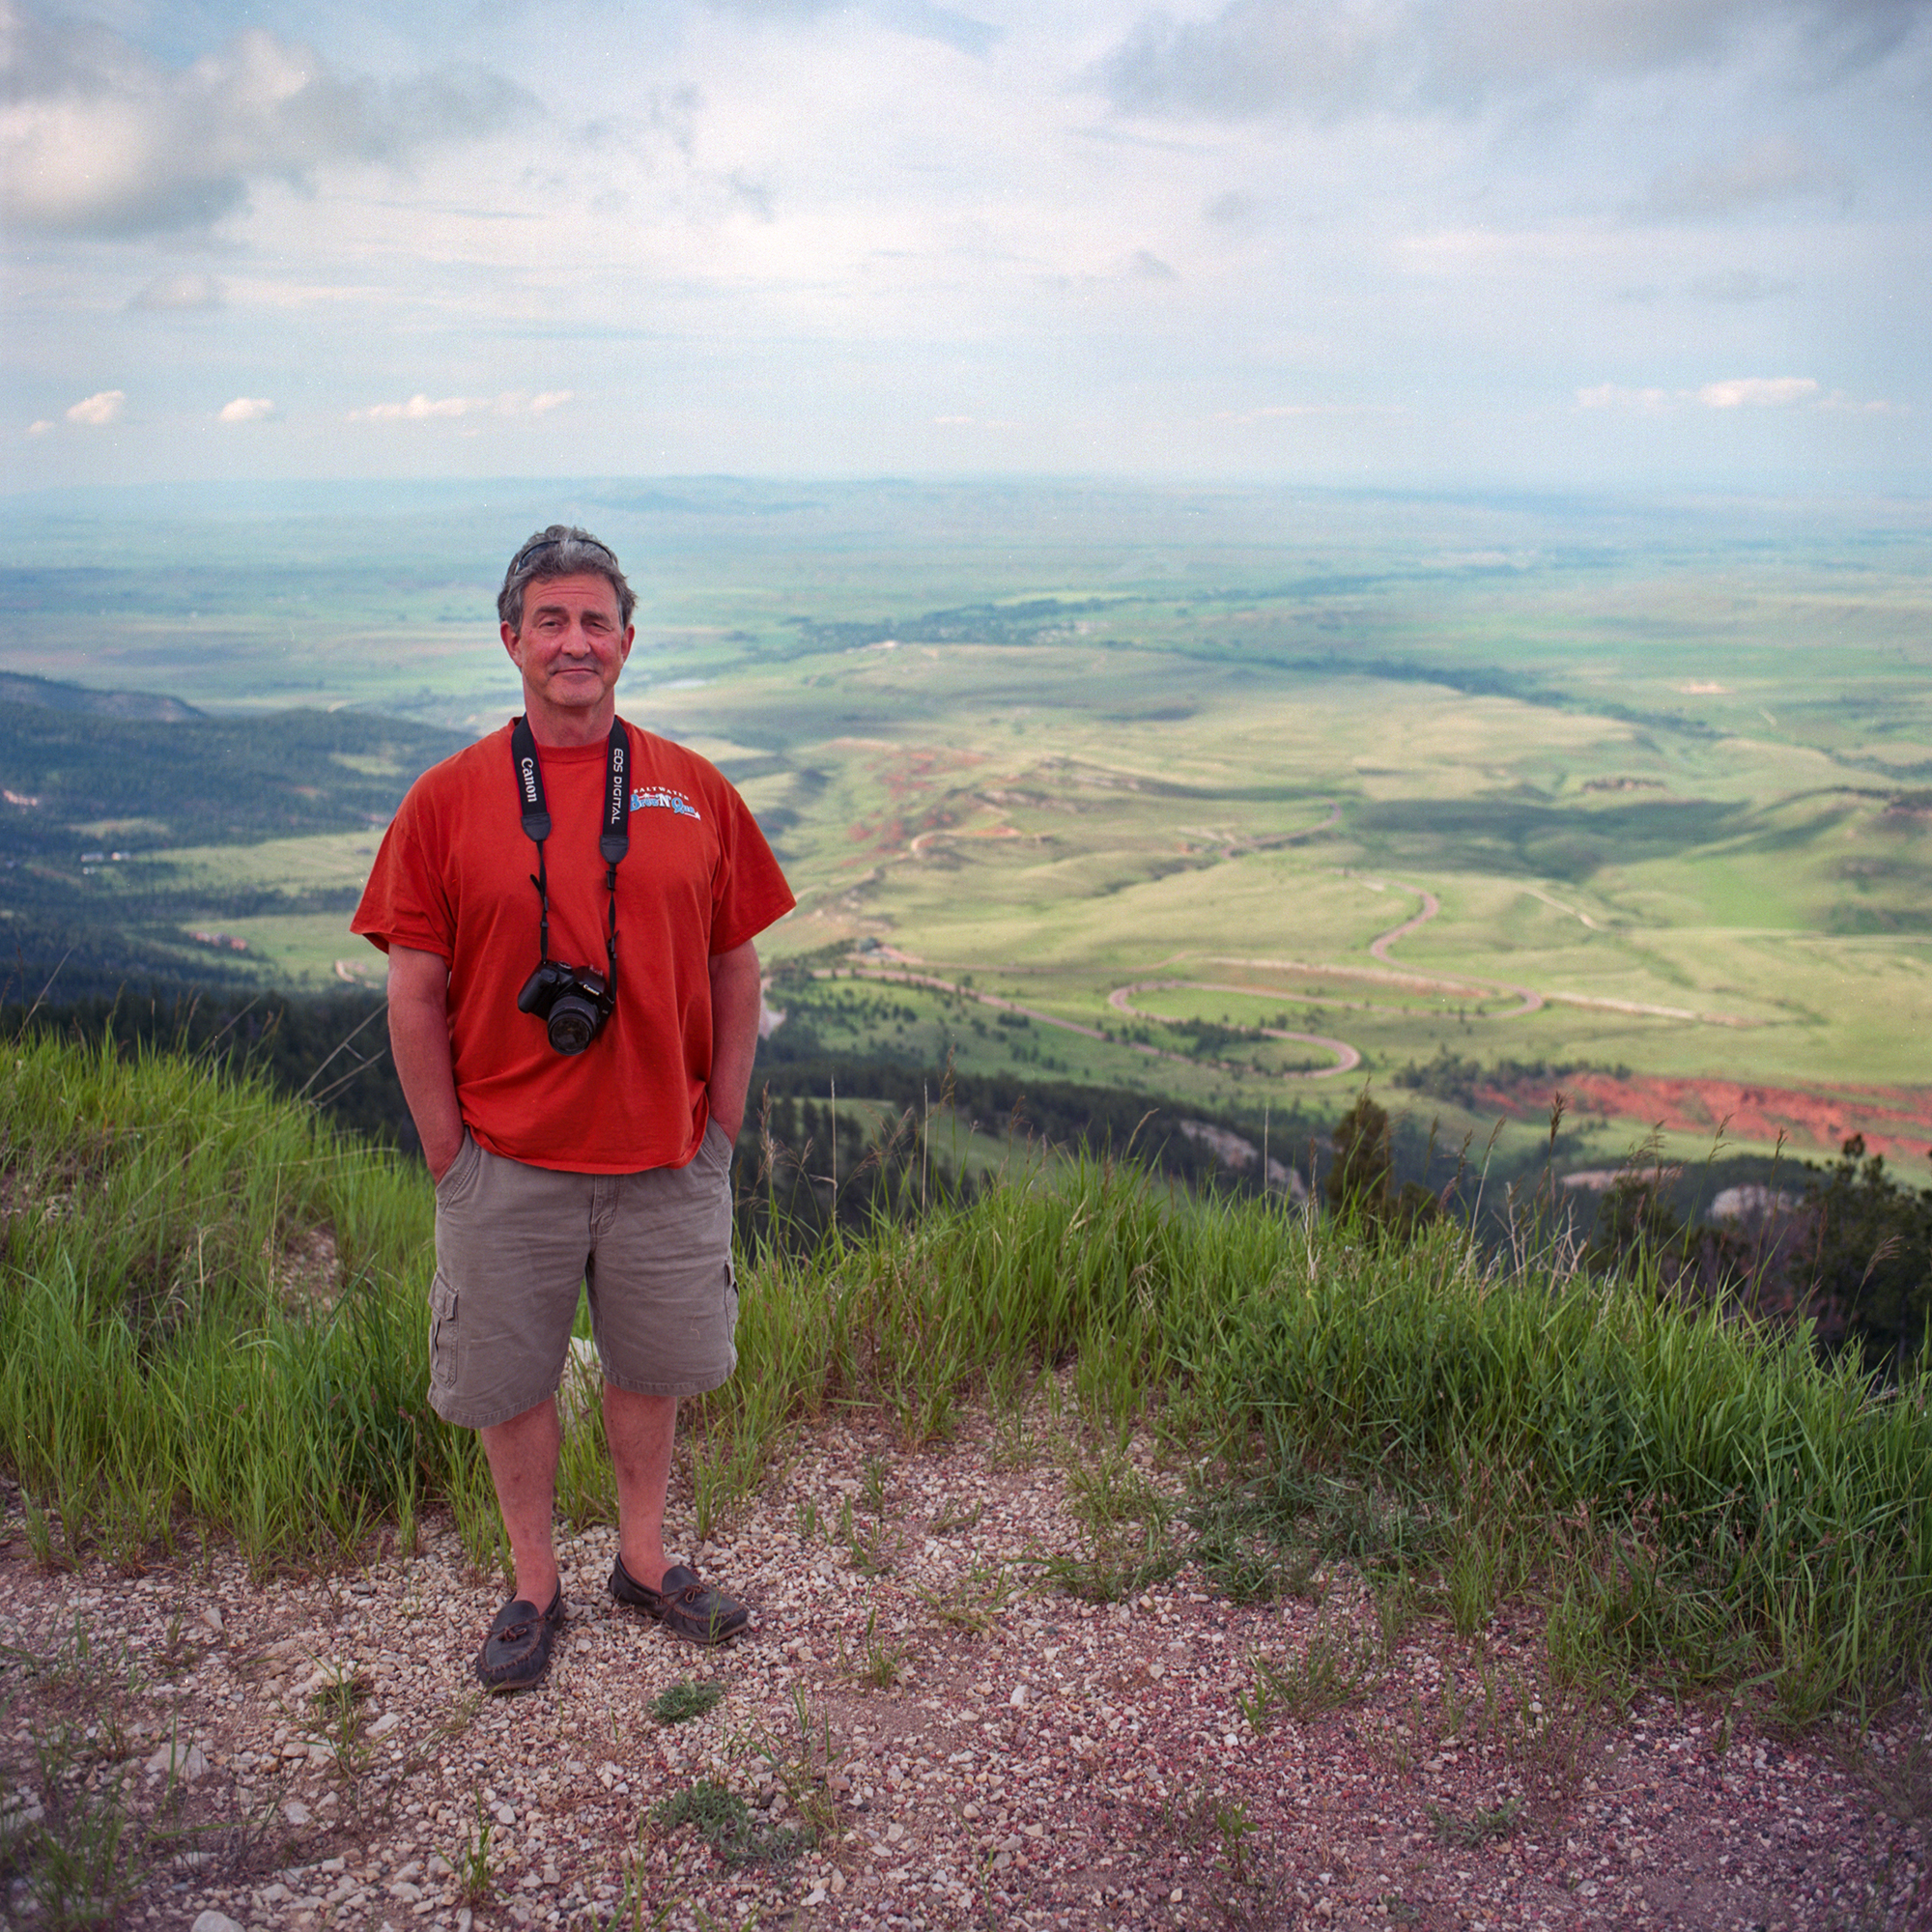 Dad at the vista overlooking eastern Wyoming.